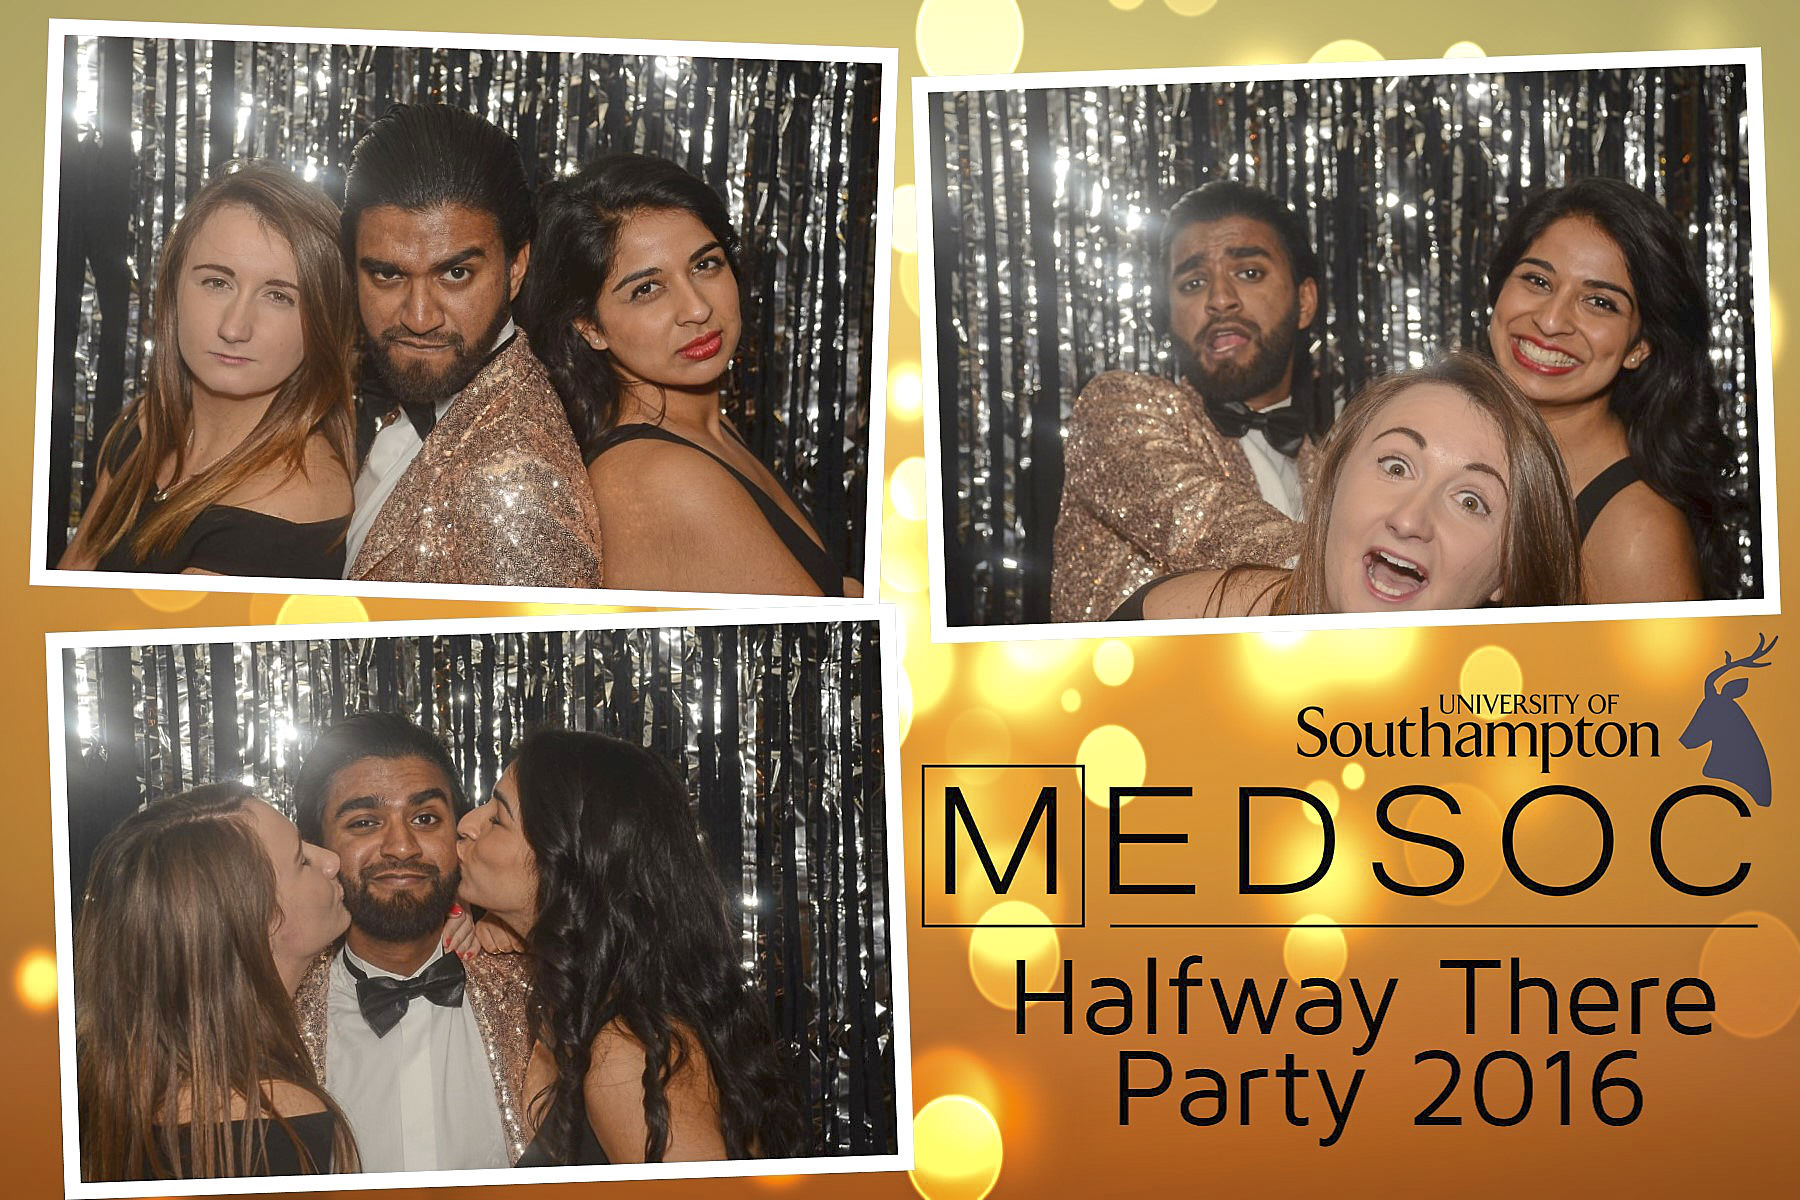 MedSoc Halfway There Party 2016 DS003412.jpg